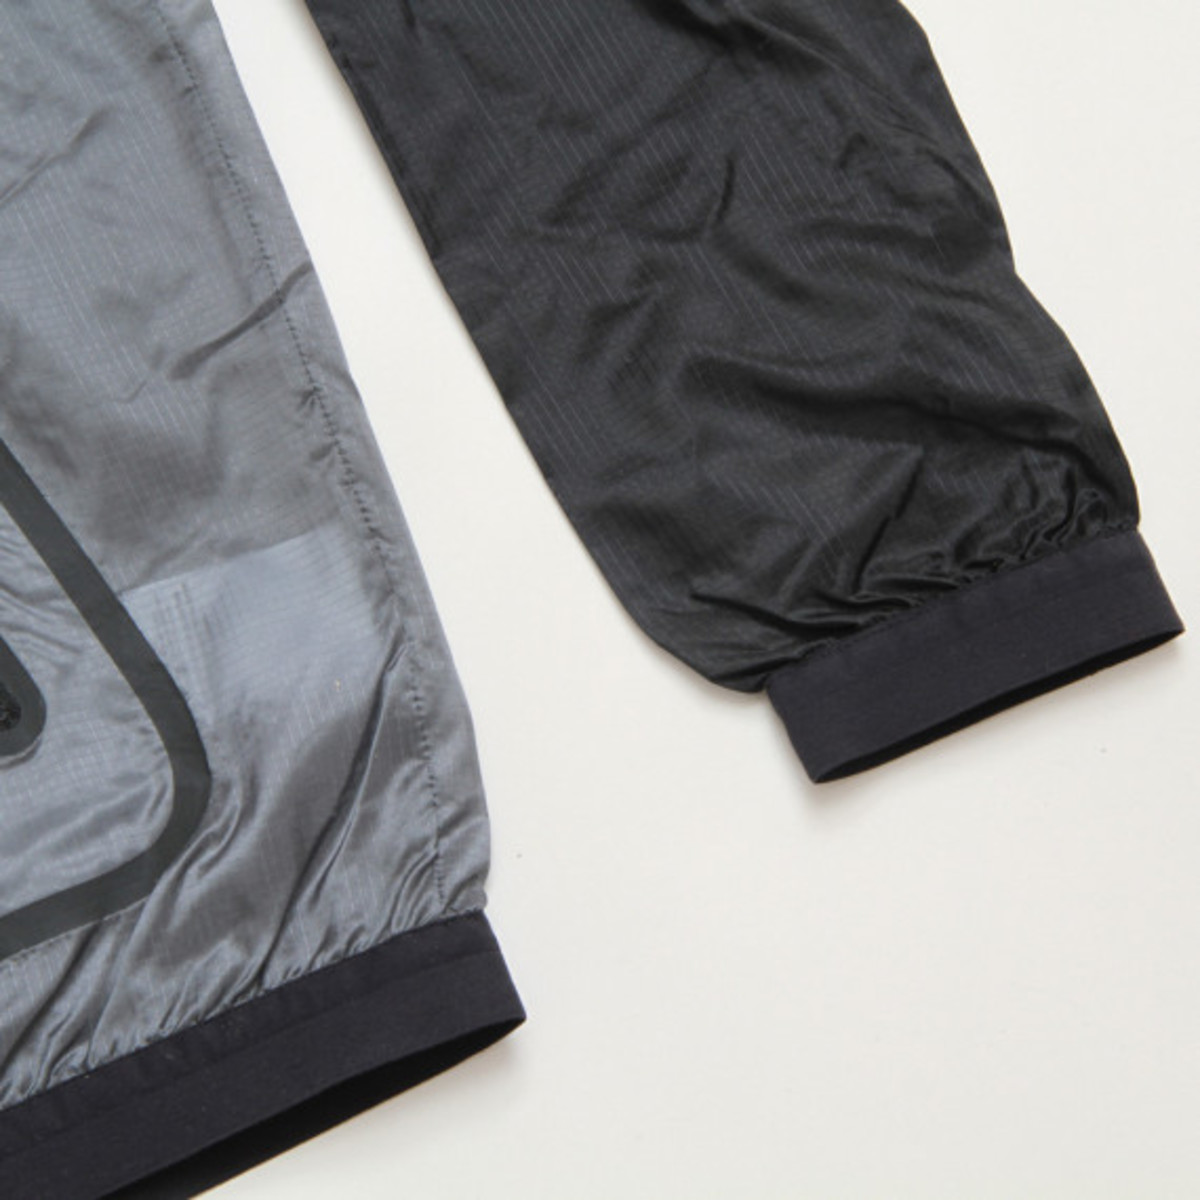 fragment design x Nike Lab Fragment Tech Windrunner Jacket - 13